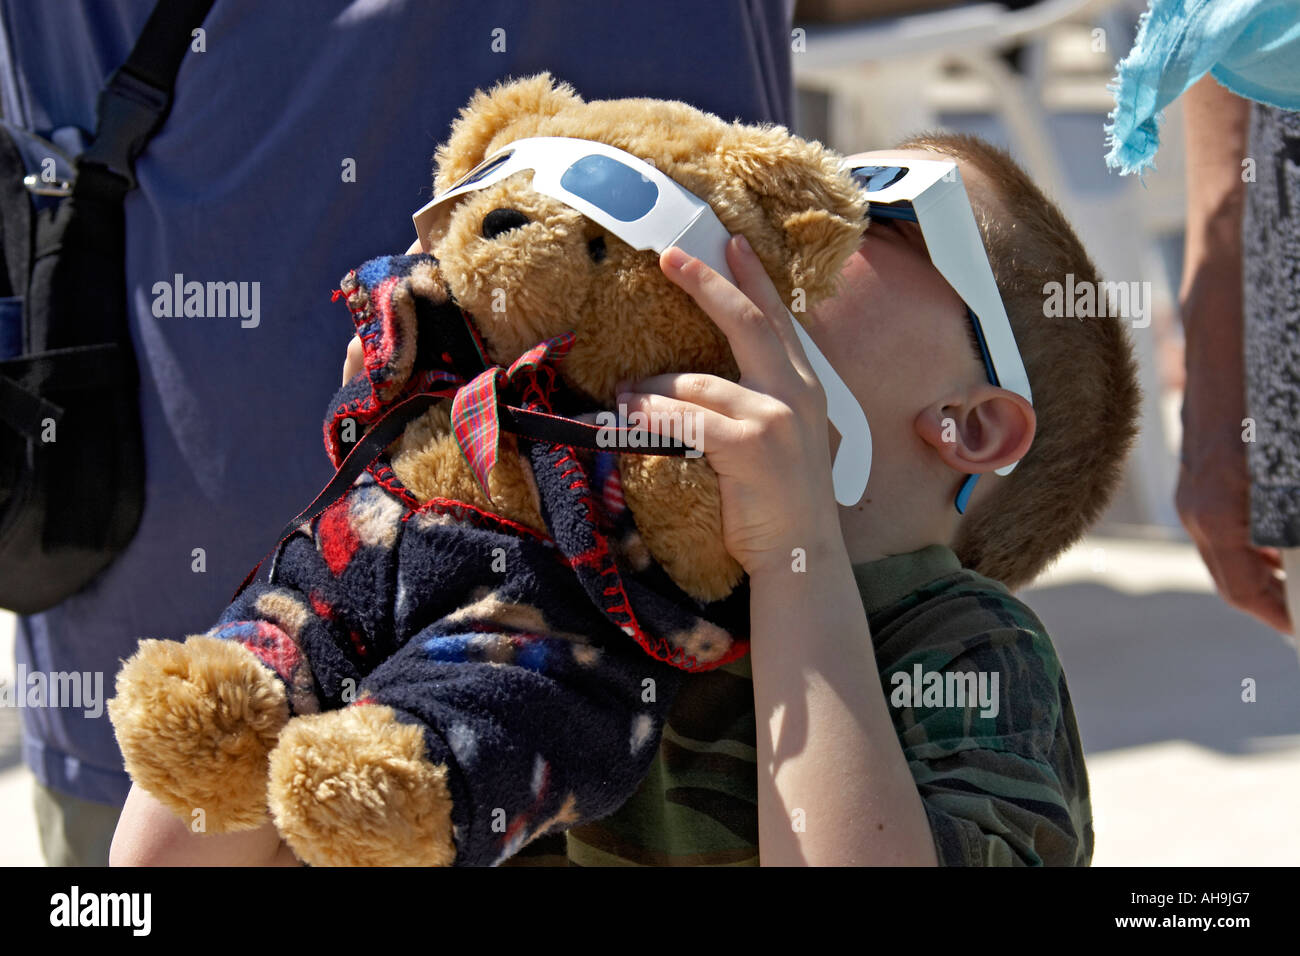 Young boy with teddy bear and solar viewer safety glasses watching the initial stages of the Total Eclipse of the Stock Photo